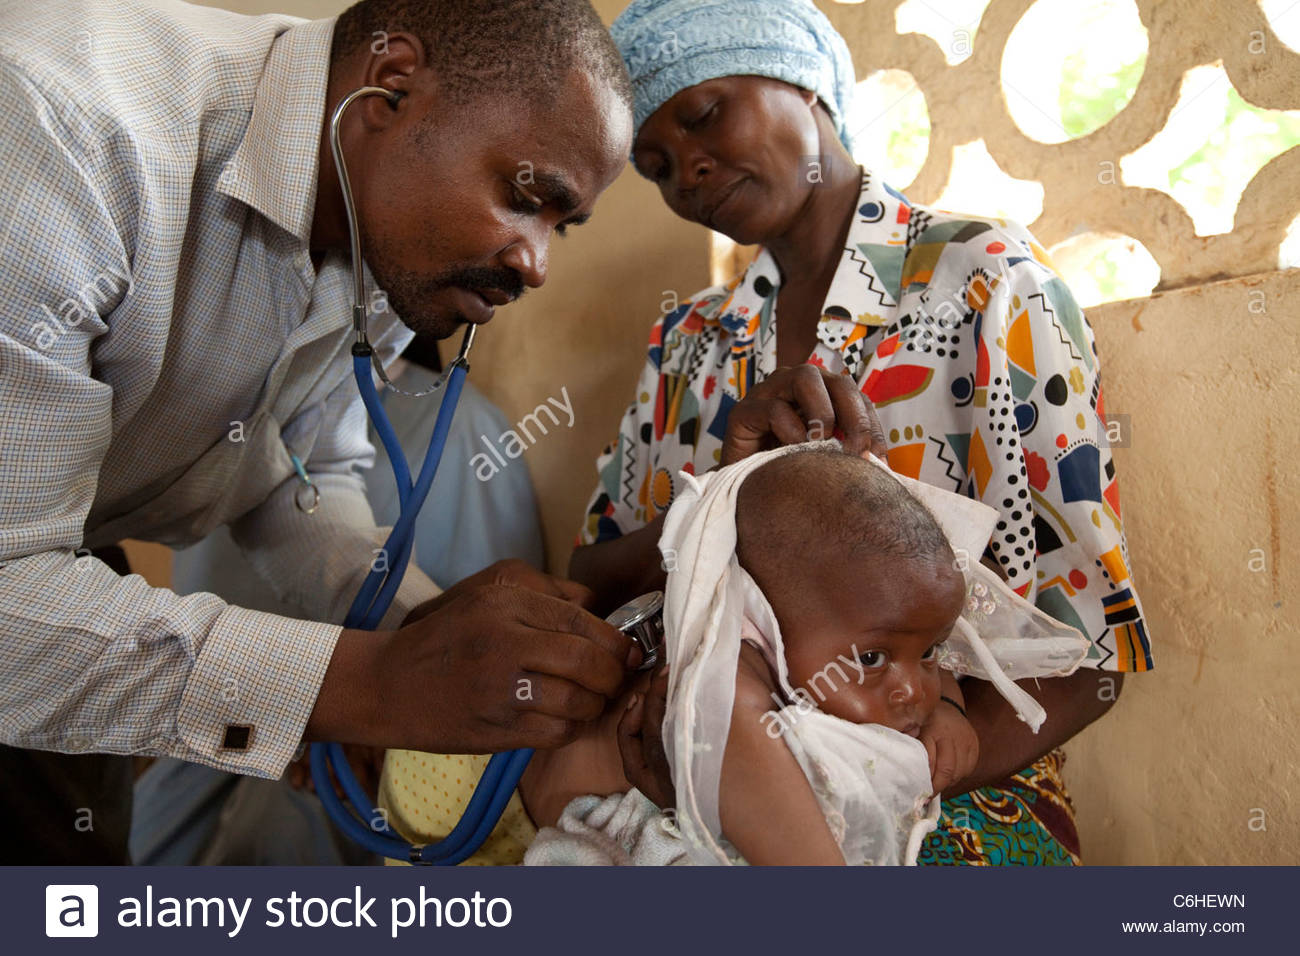 A doctor examines a small child at a medical dispensary - Stock Image